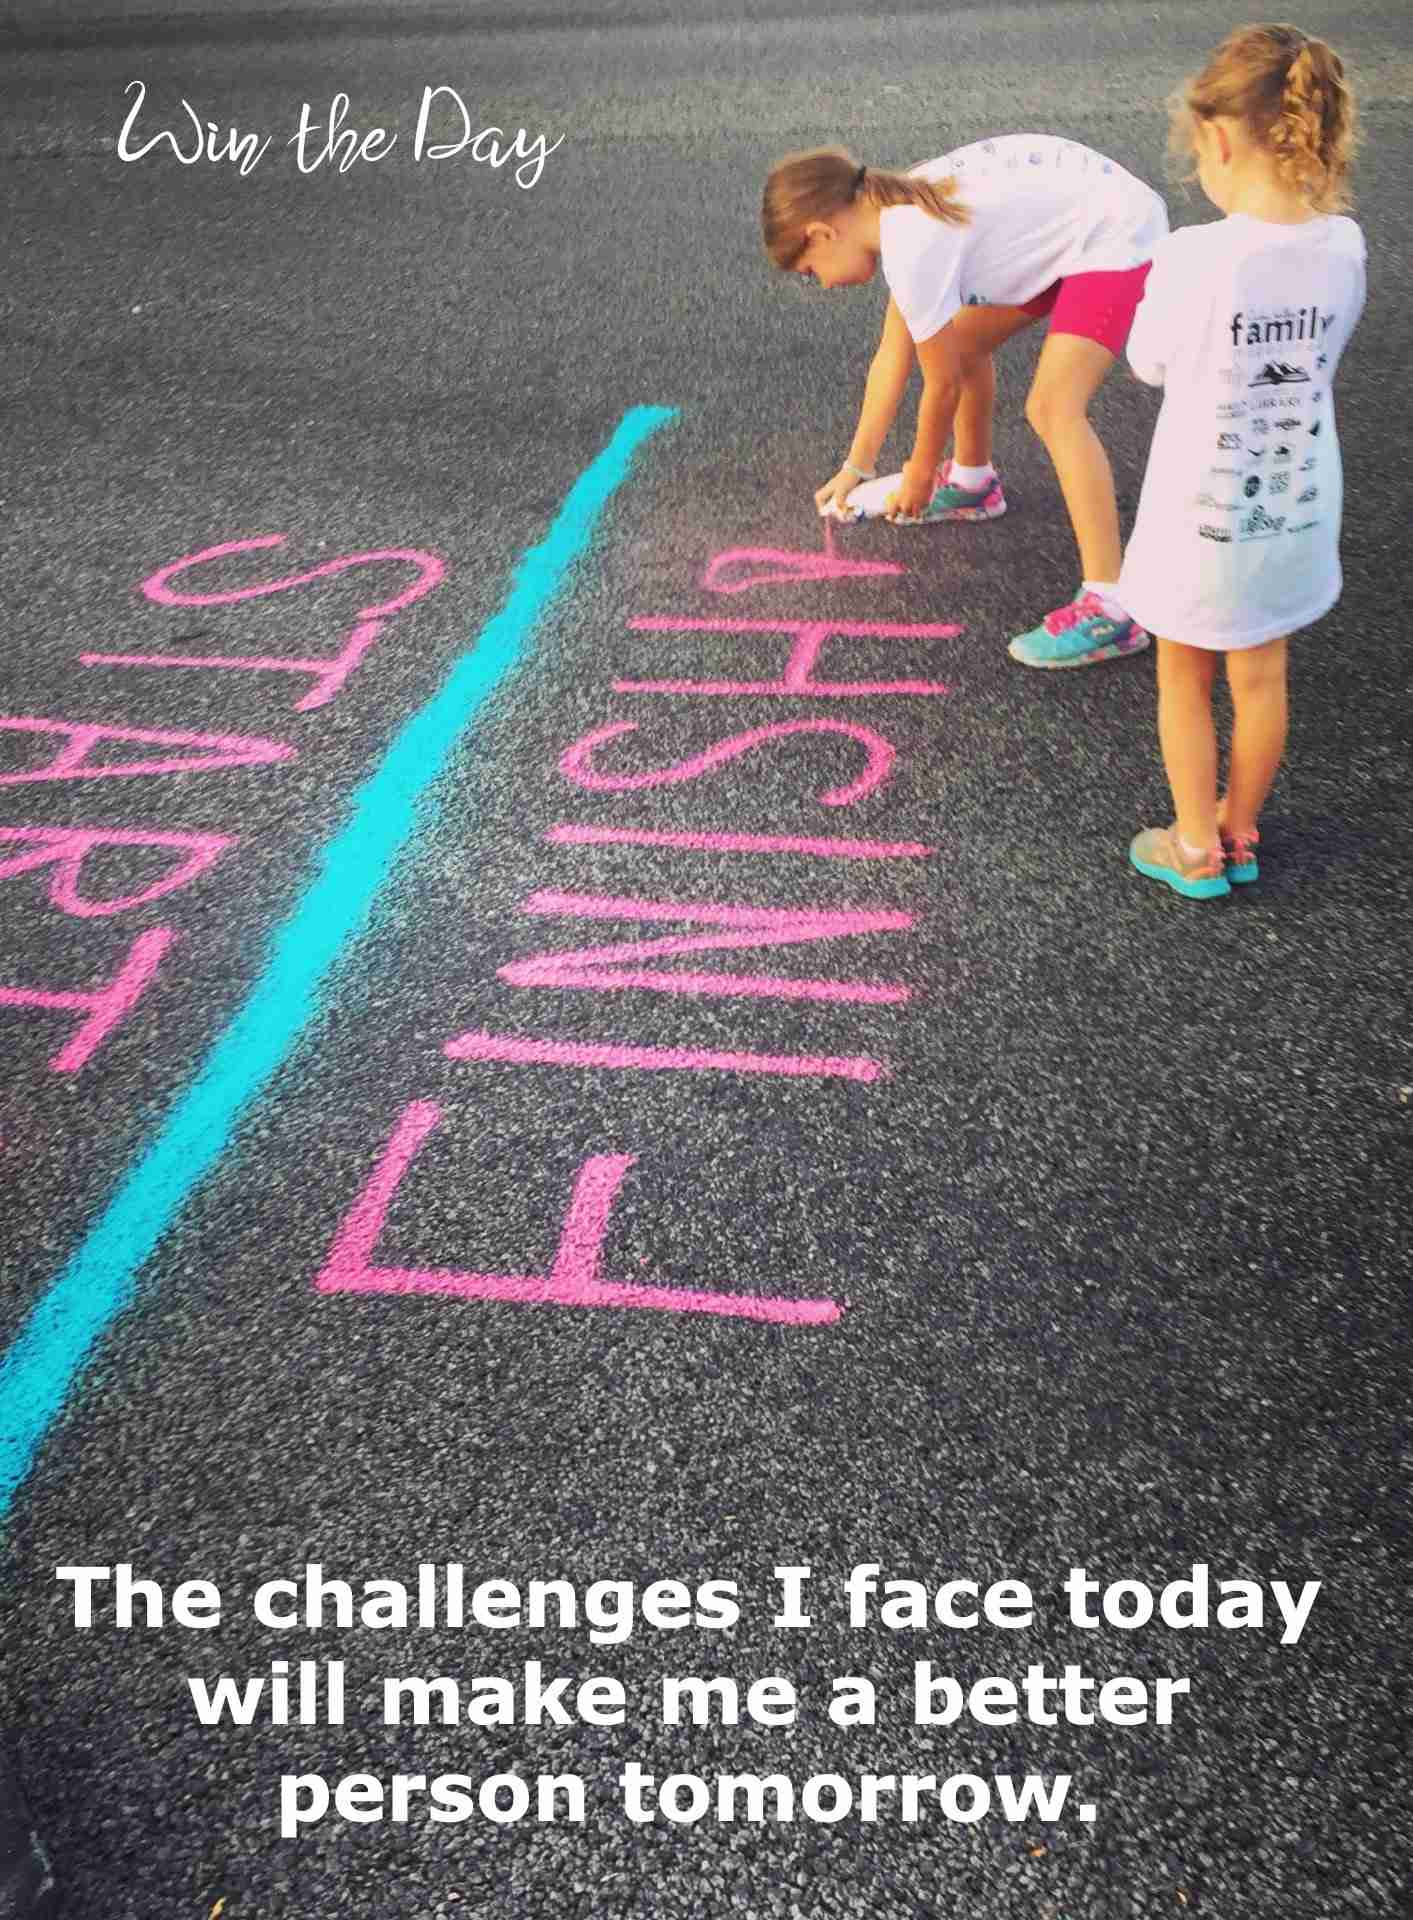 The challenges I face today will make me better tomorrow.